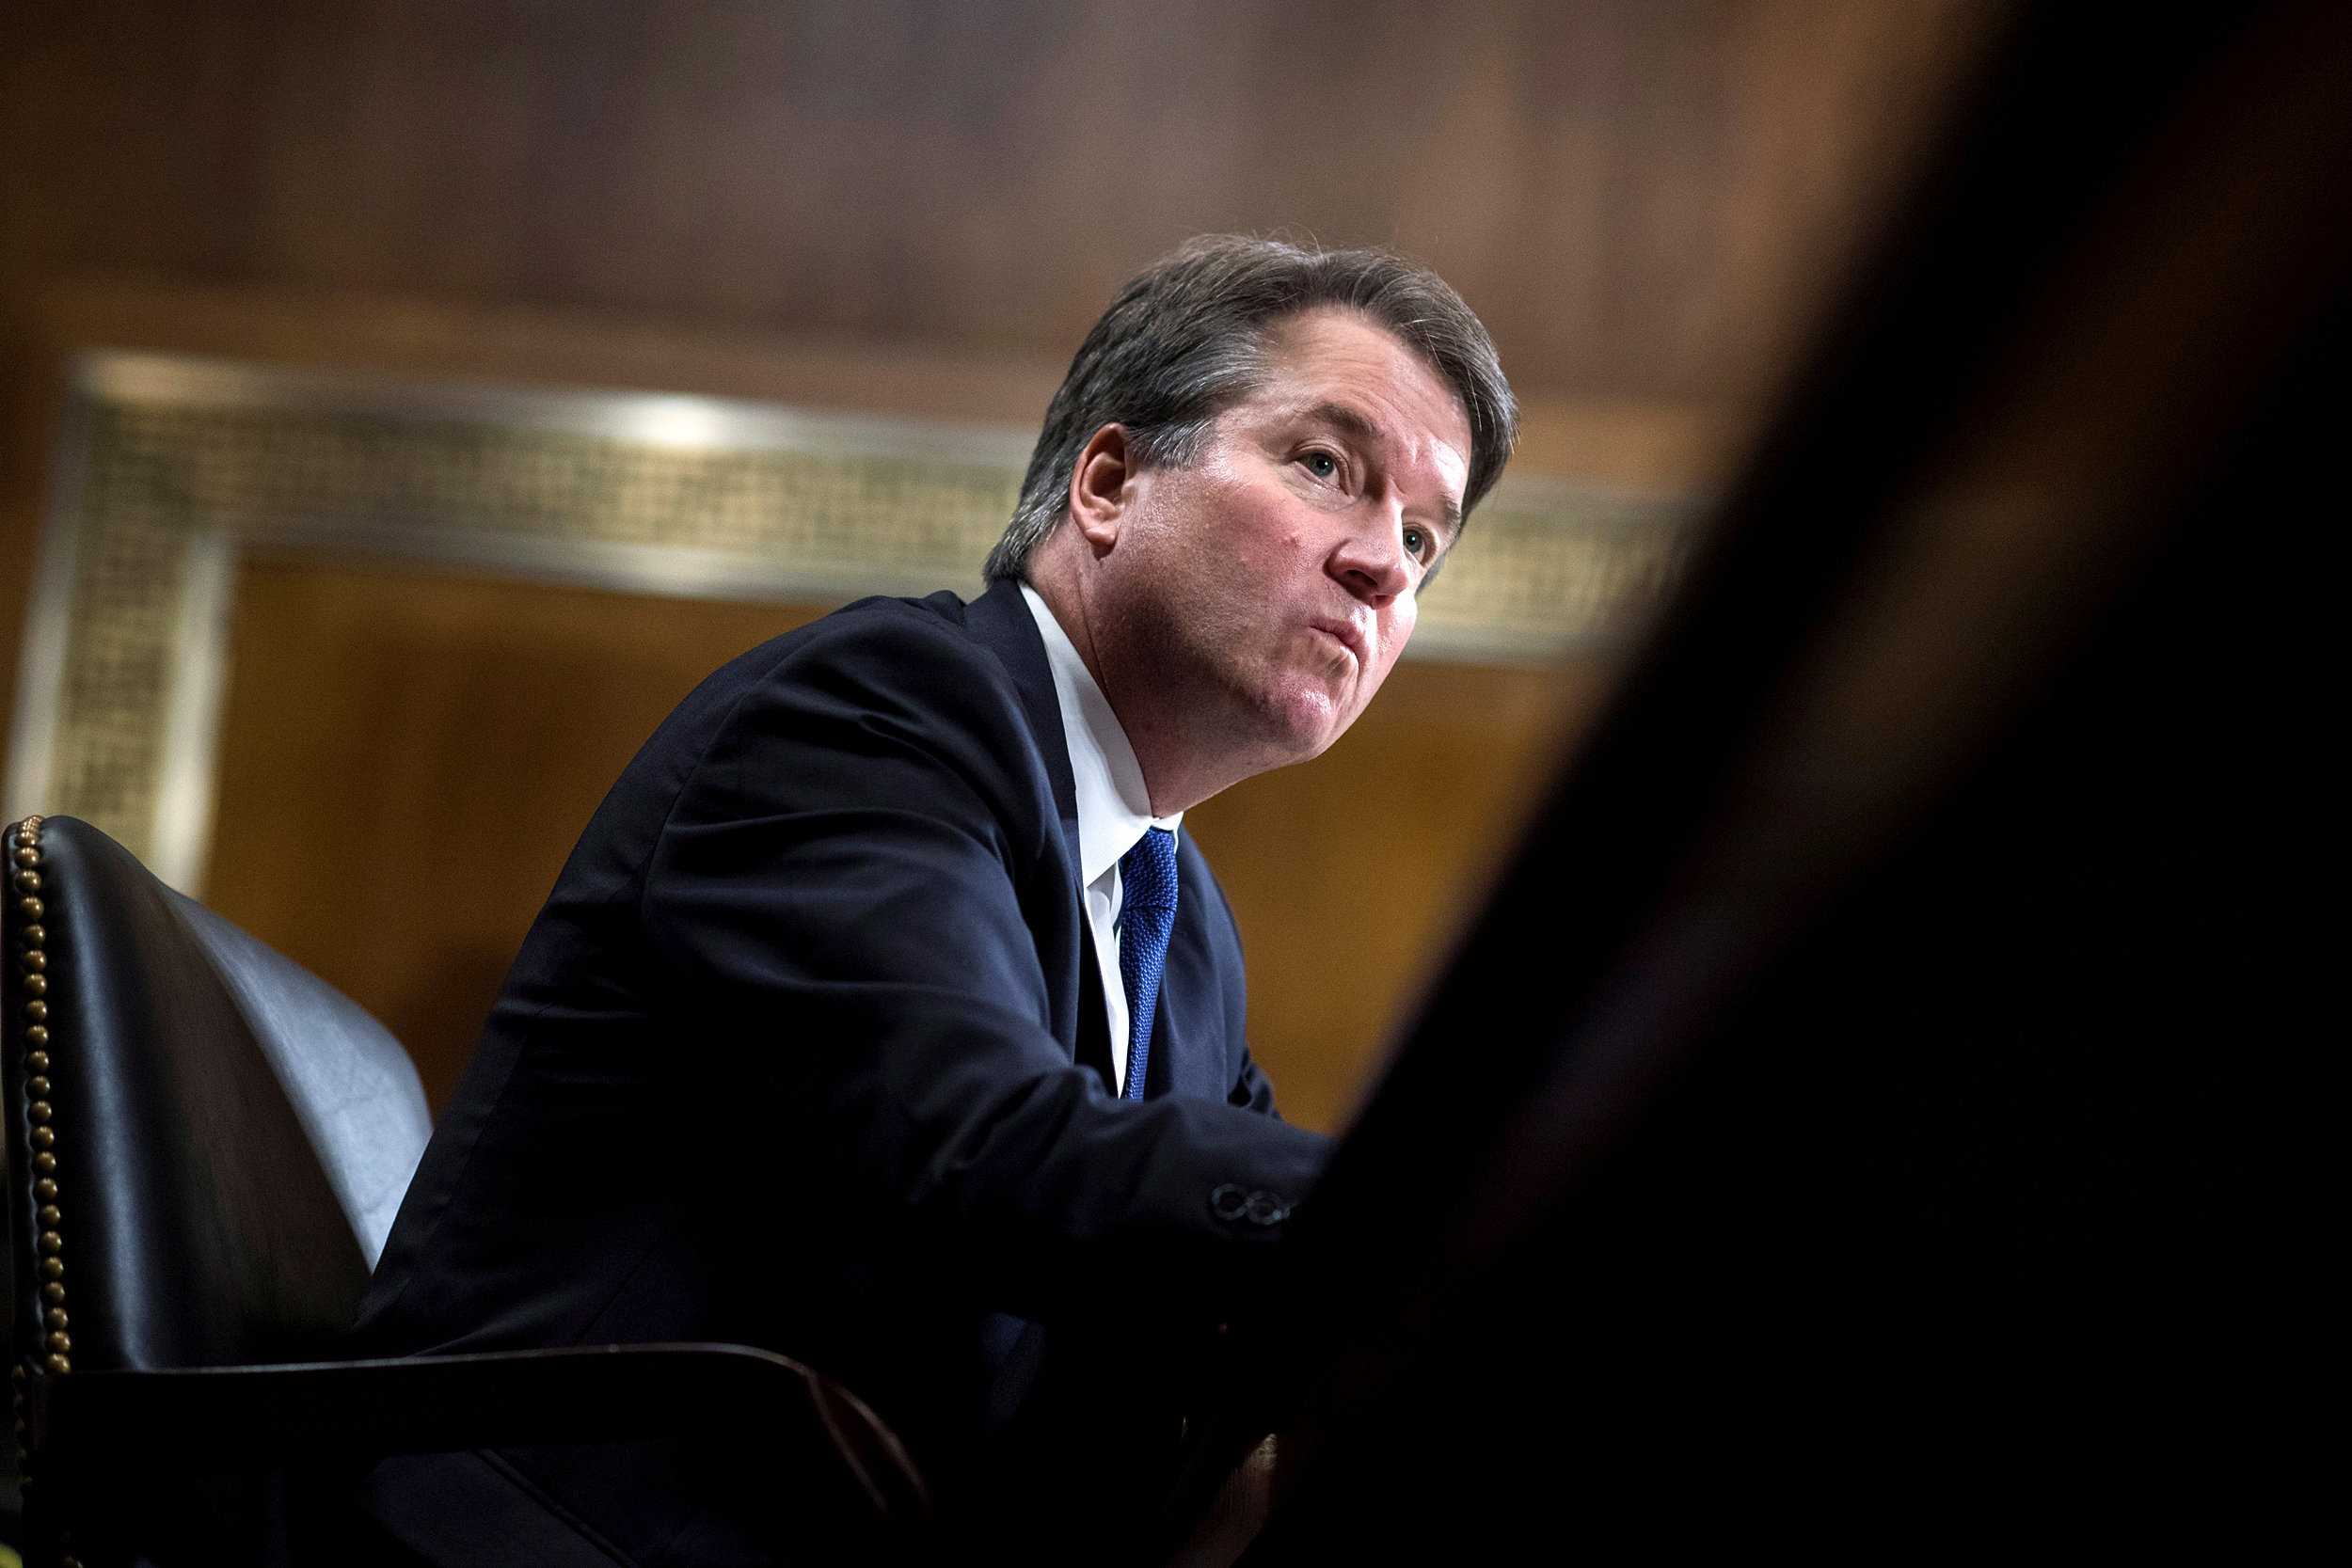 Justice Brett Kavanaugh tests positive for Covid